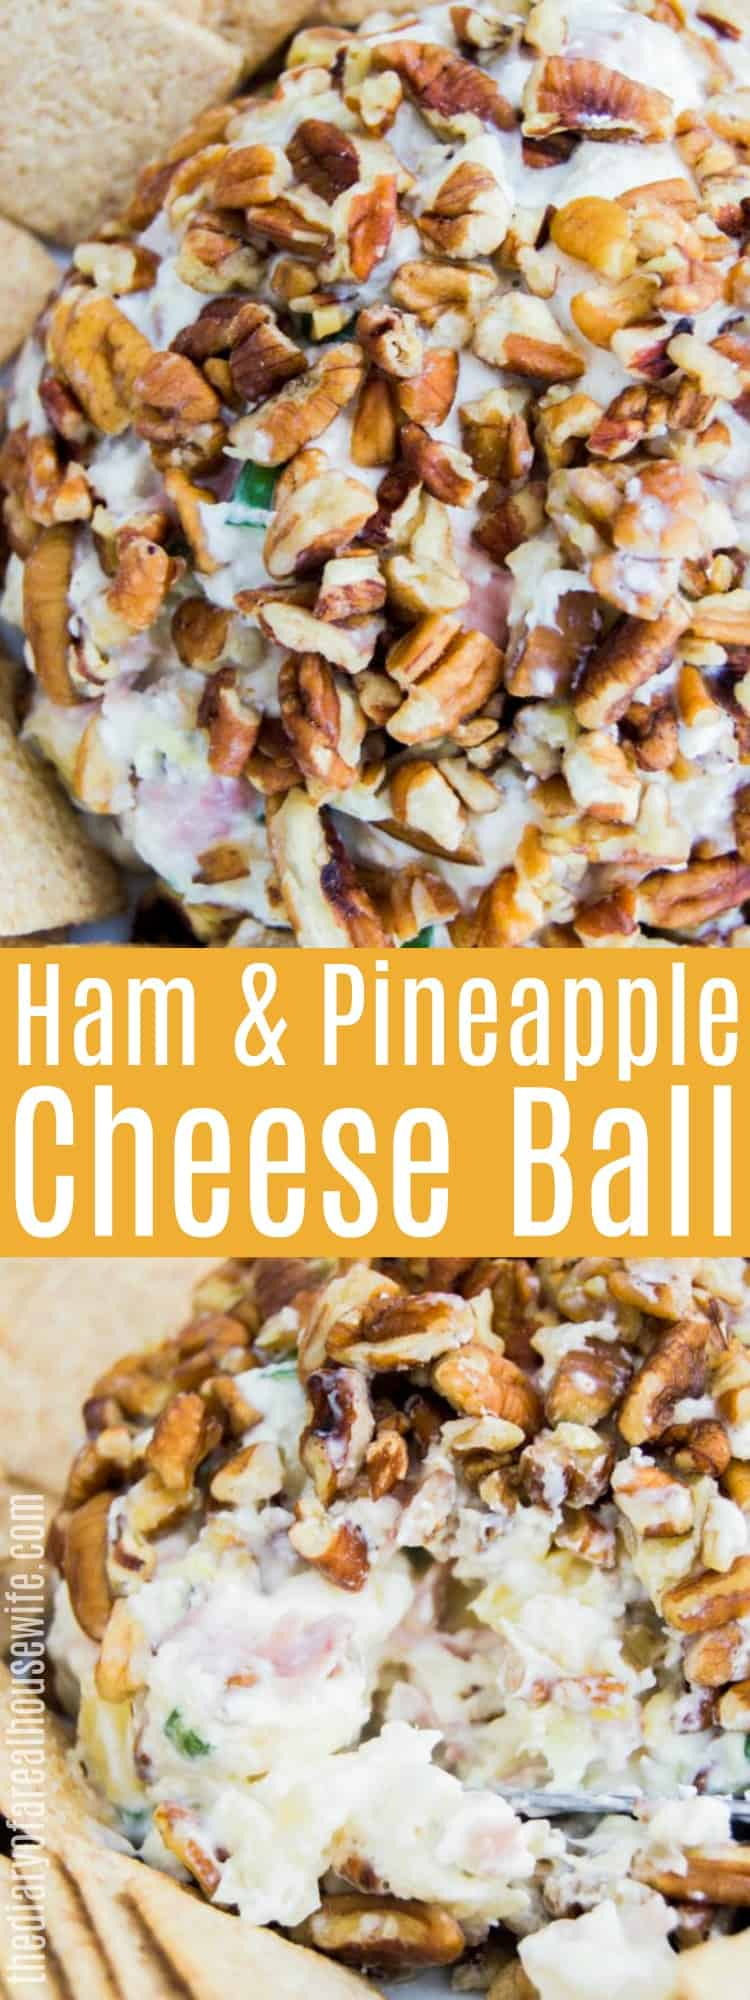 Ham and Pineapple Cheese Ball